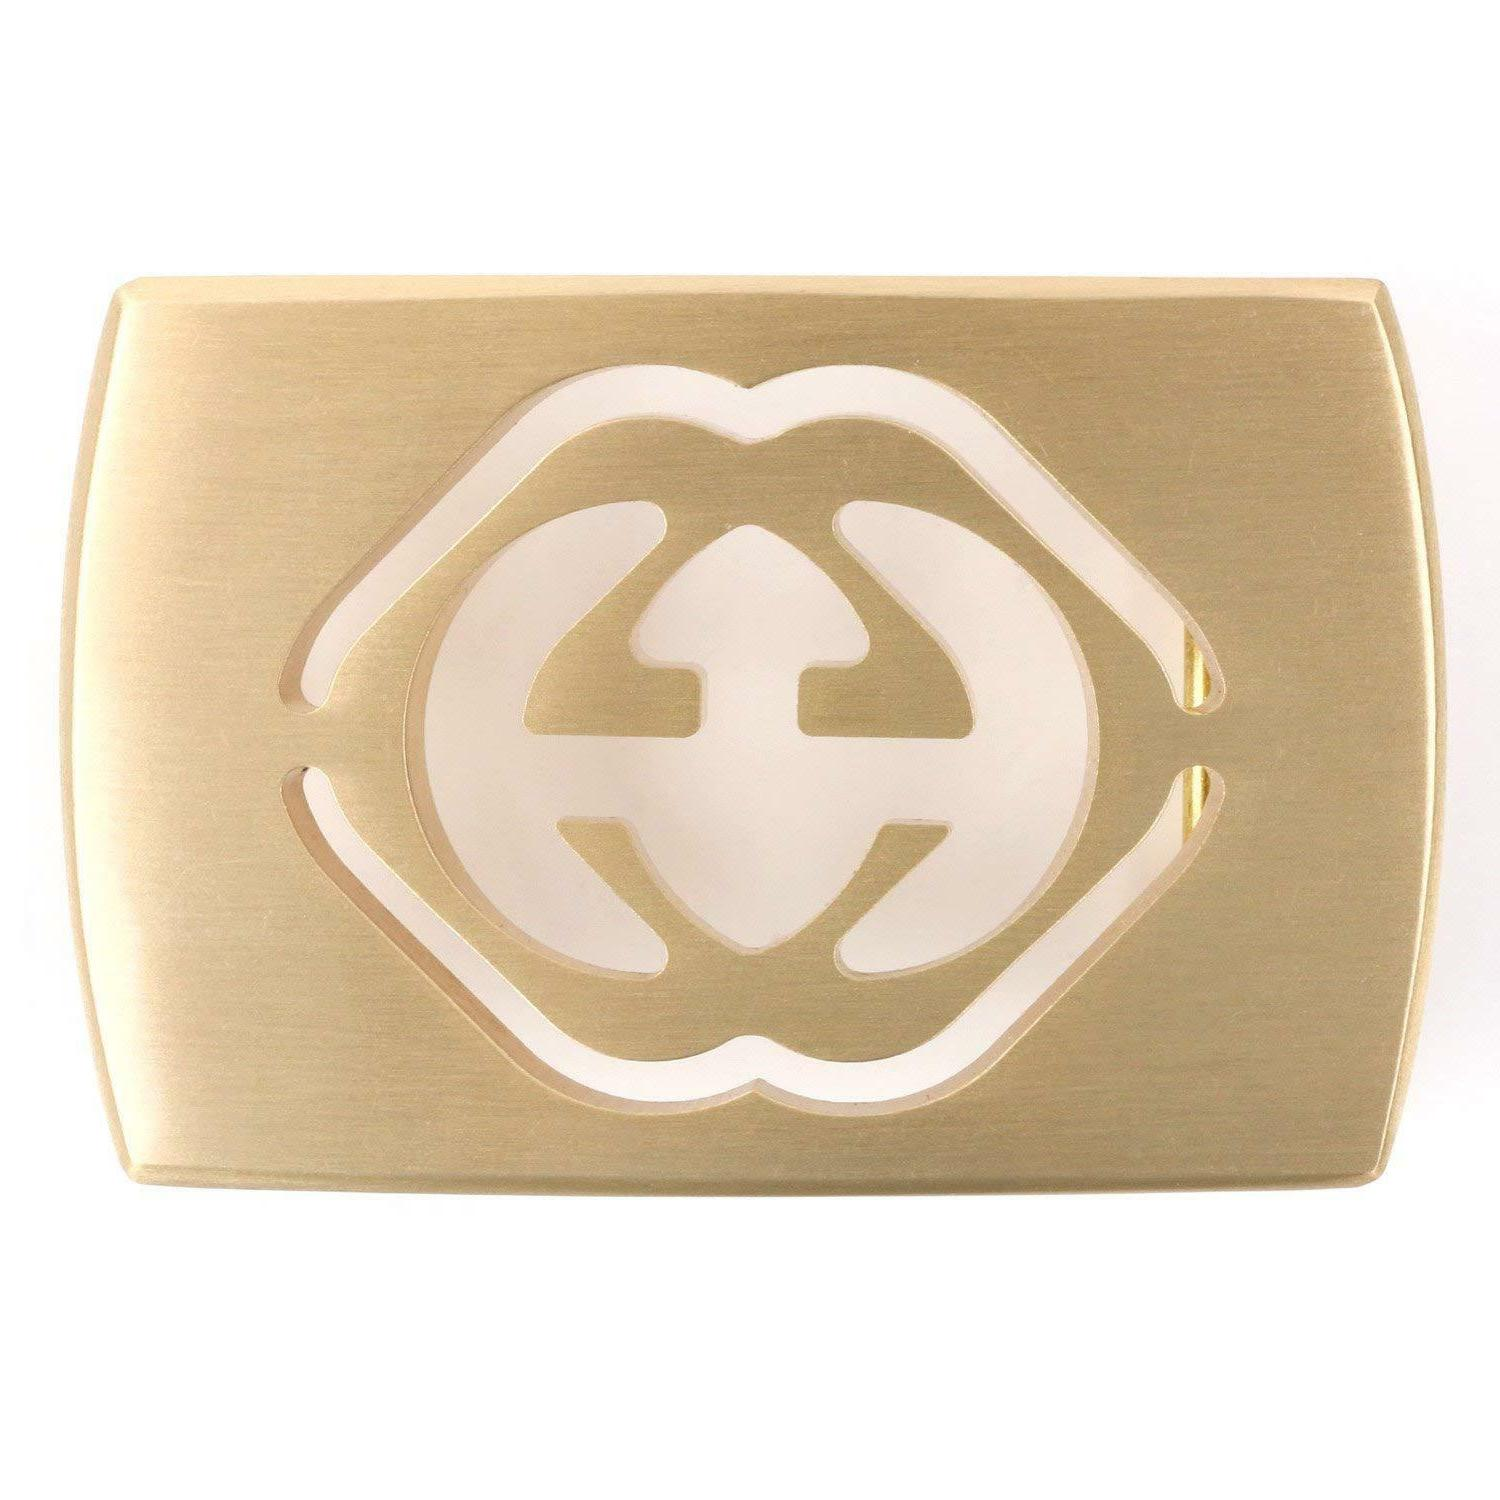 Landisun Rectangle Frame Western Belt Buckle